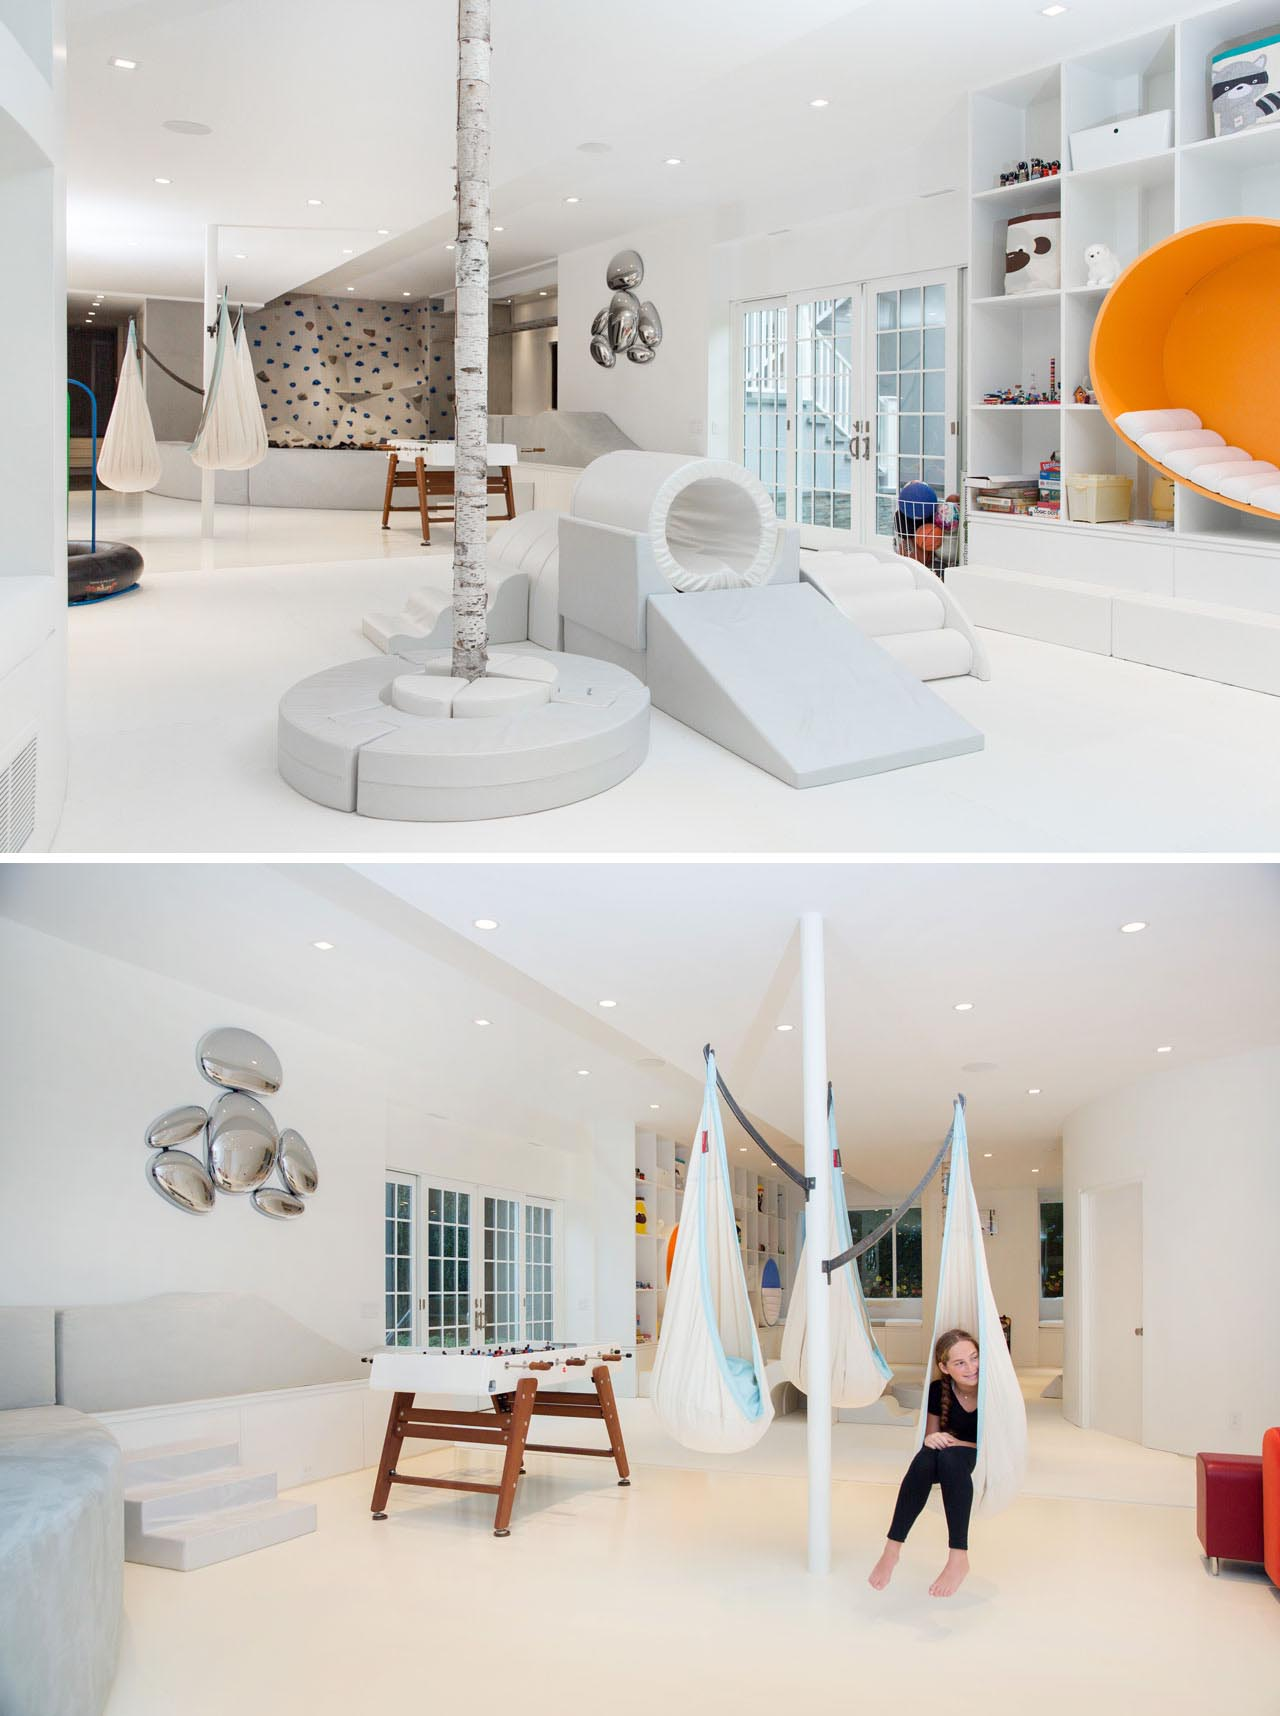 The central area of this modern playroom includes upholstered play equipment with a variety of shapes, allowing the children to build and play freely. A children's hammock tree has been created on a column, and uses steel hammock braces.